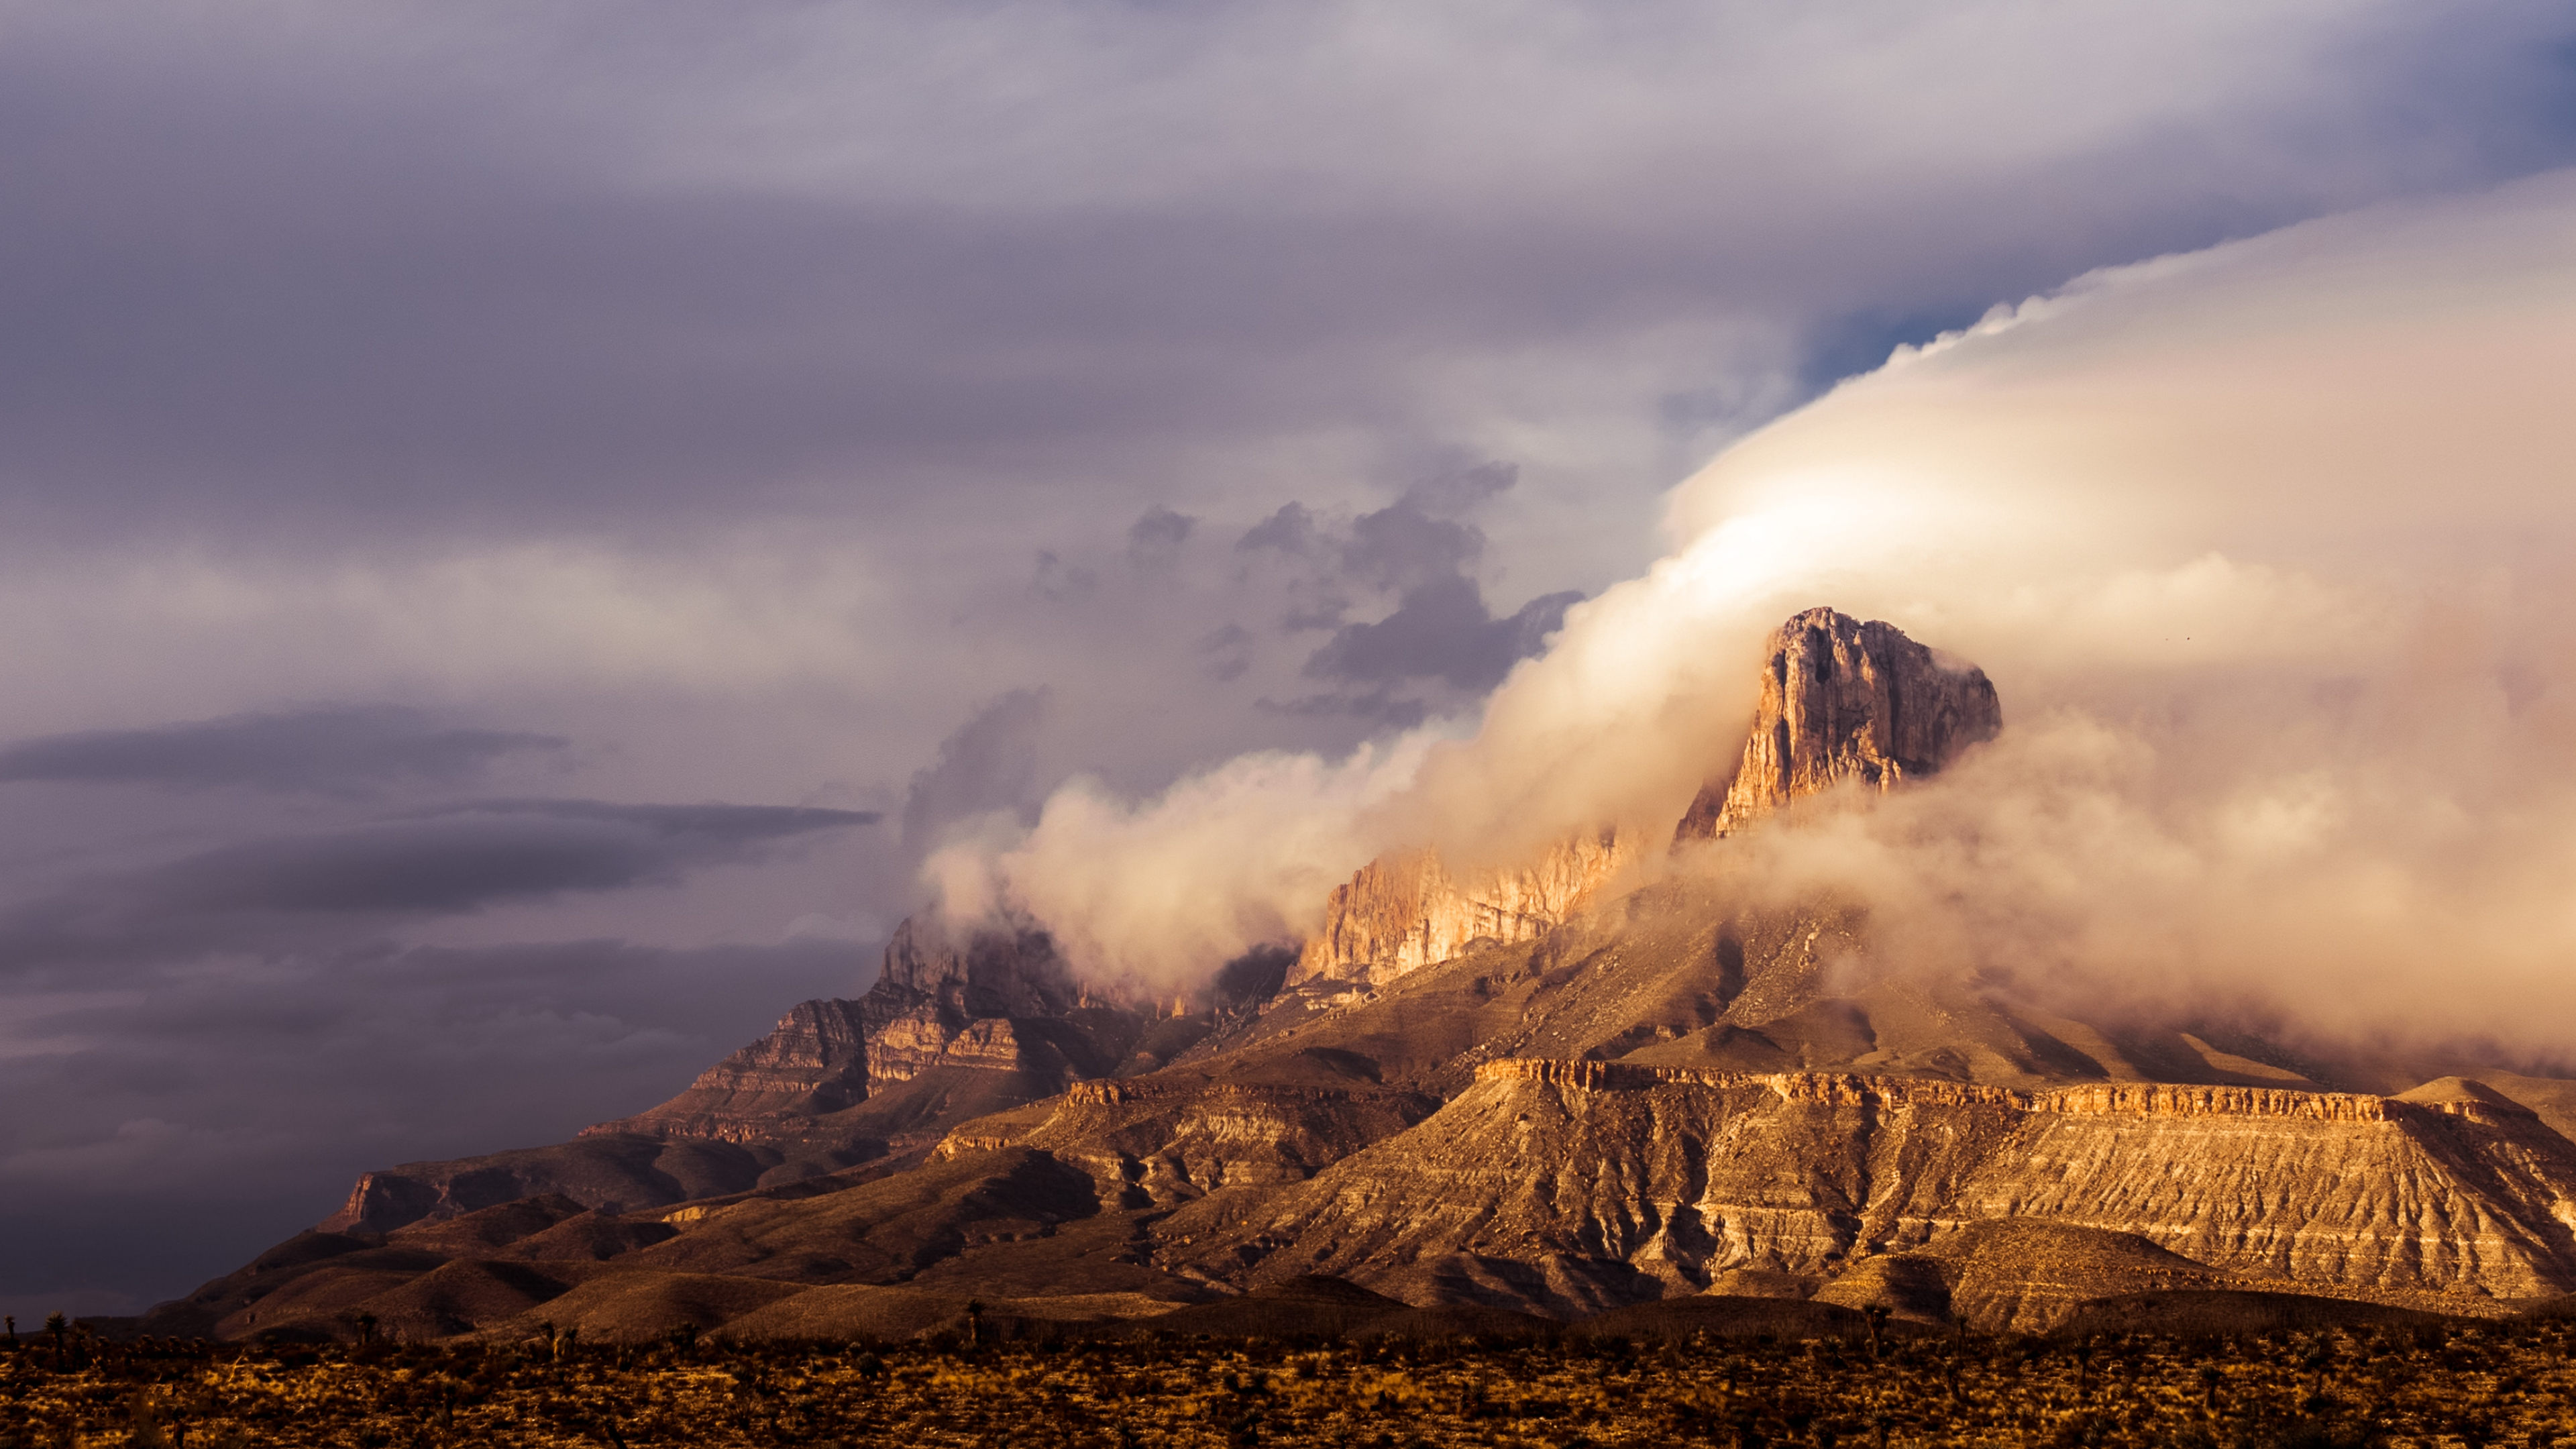 The clouds rolling over the peaks of the Guadalupe Mountains